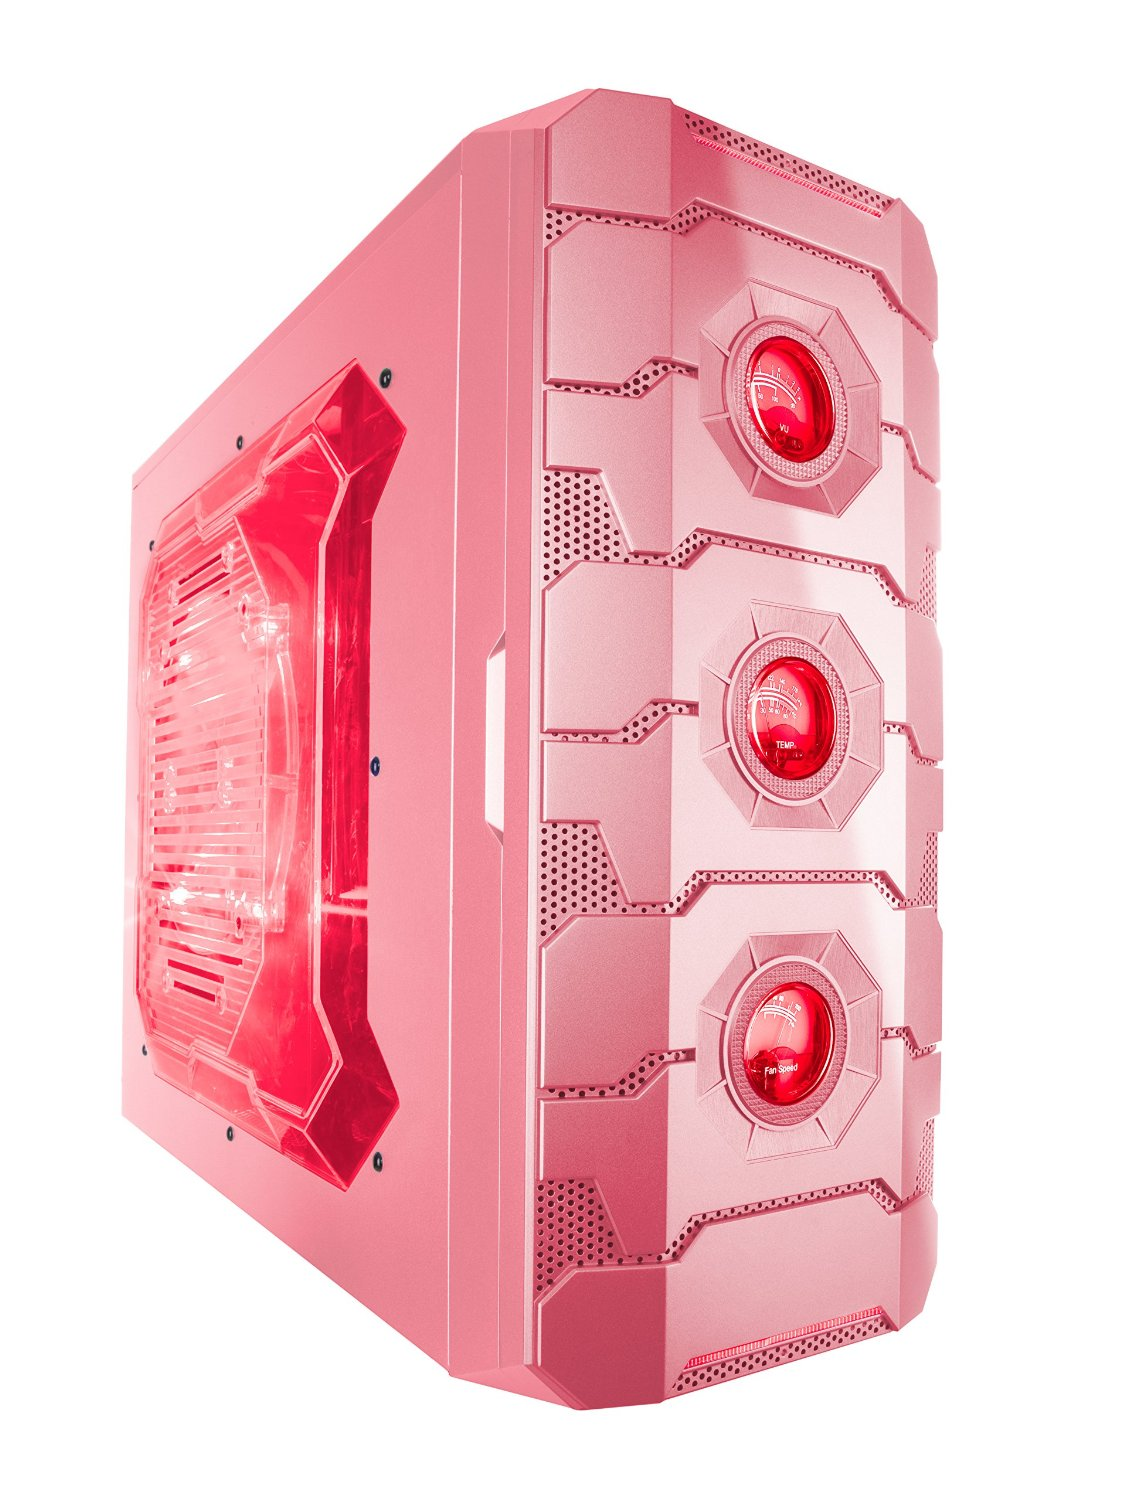 Apevia X-CRUISER3-PK ATX Mid Tower Gaming Case with 5 Fans, Large Side Window, USB2.0/USB3.0/HD Audio Ports, Fan Speed Controller, Colored VU/Temp/Fan Speed Gauges, up to 7 x Cooling Fan Space - Pink/Red